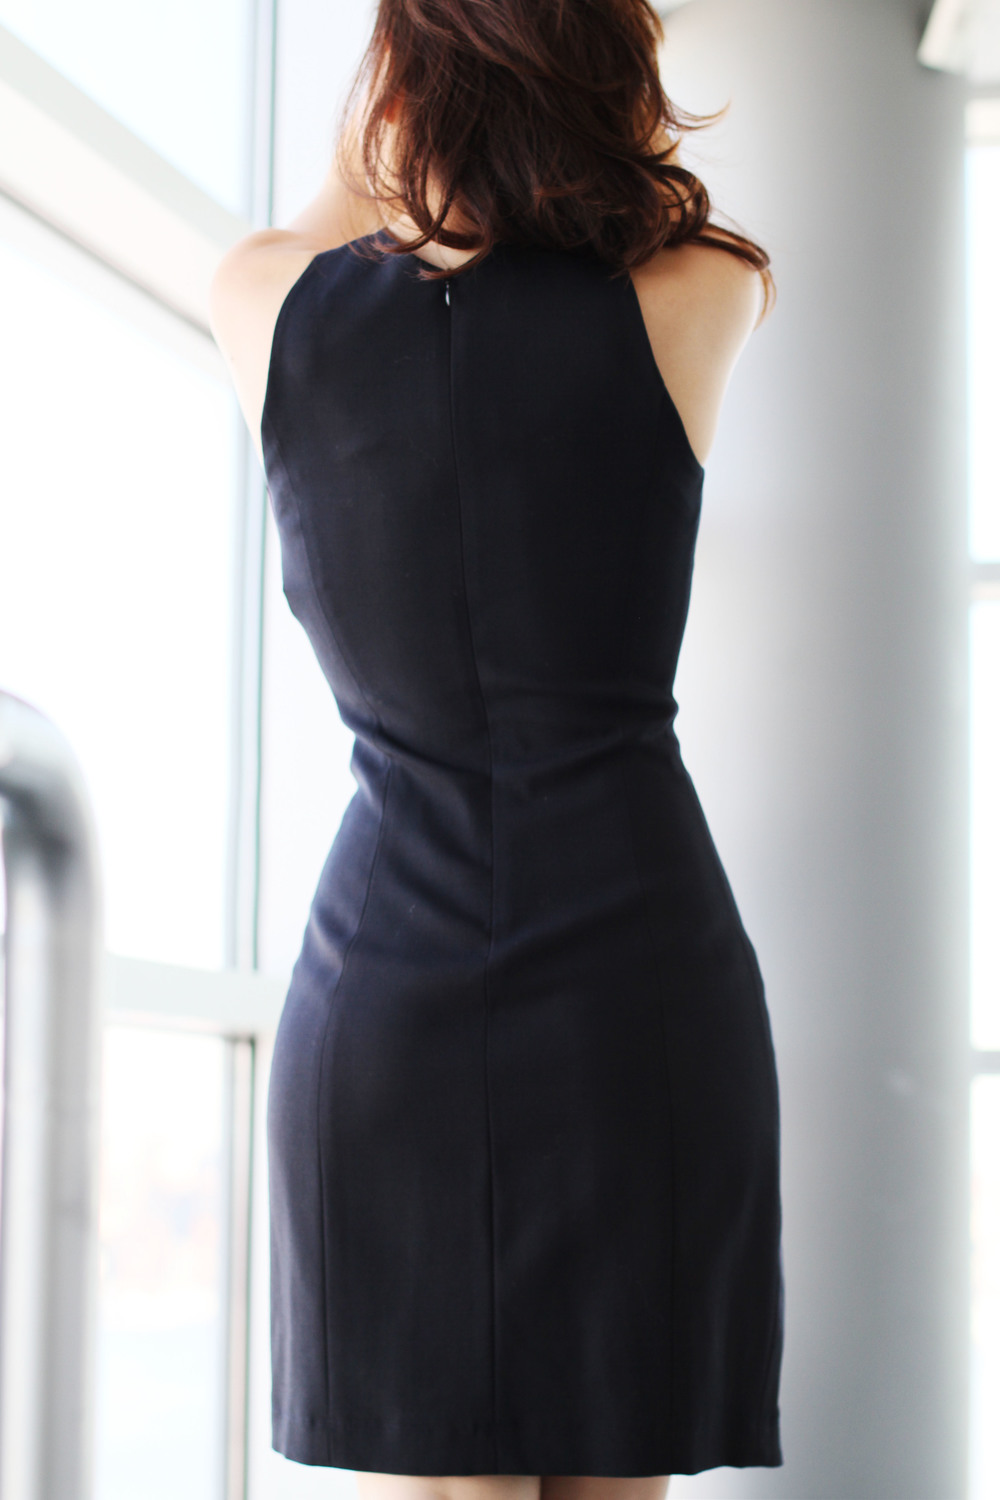 onepointsix office dress back.jpg